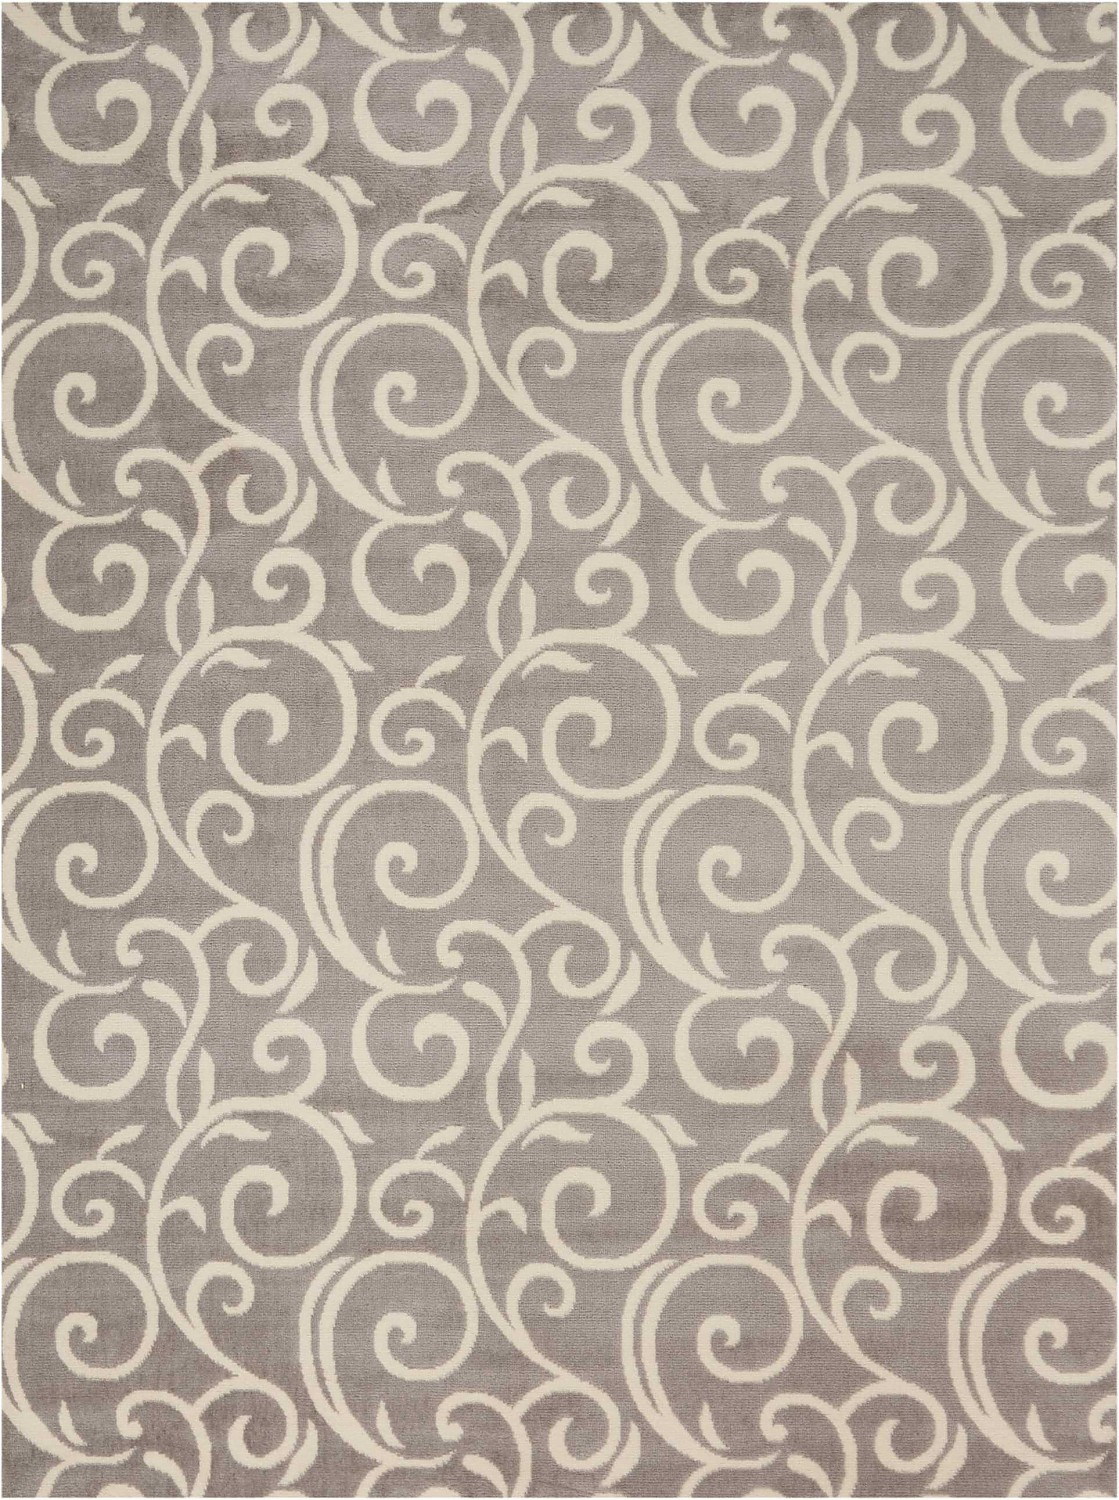 Grafix GRF19 Grey Area Rug Bohemian Contemporary Botanical B